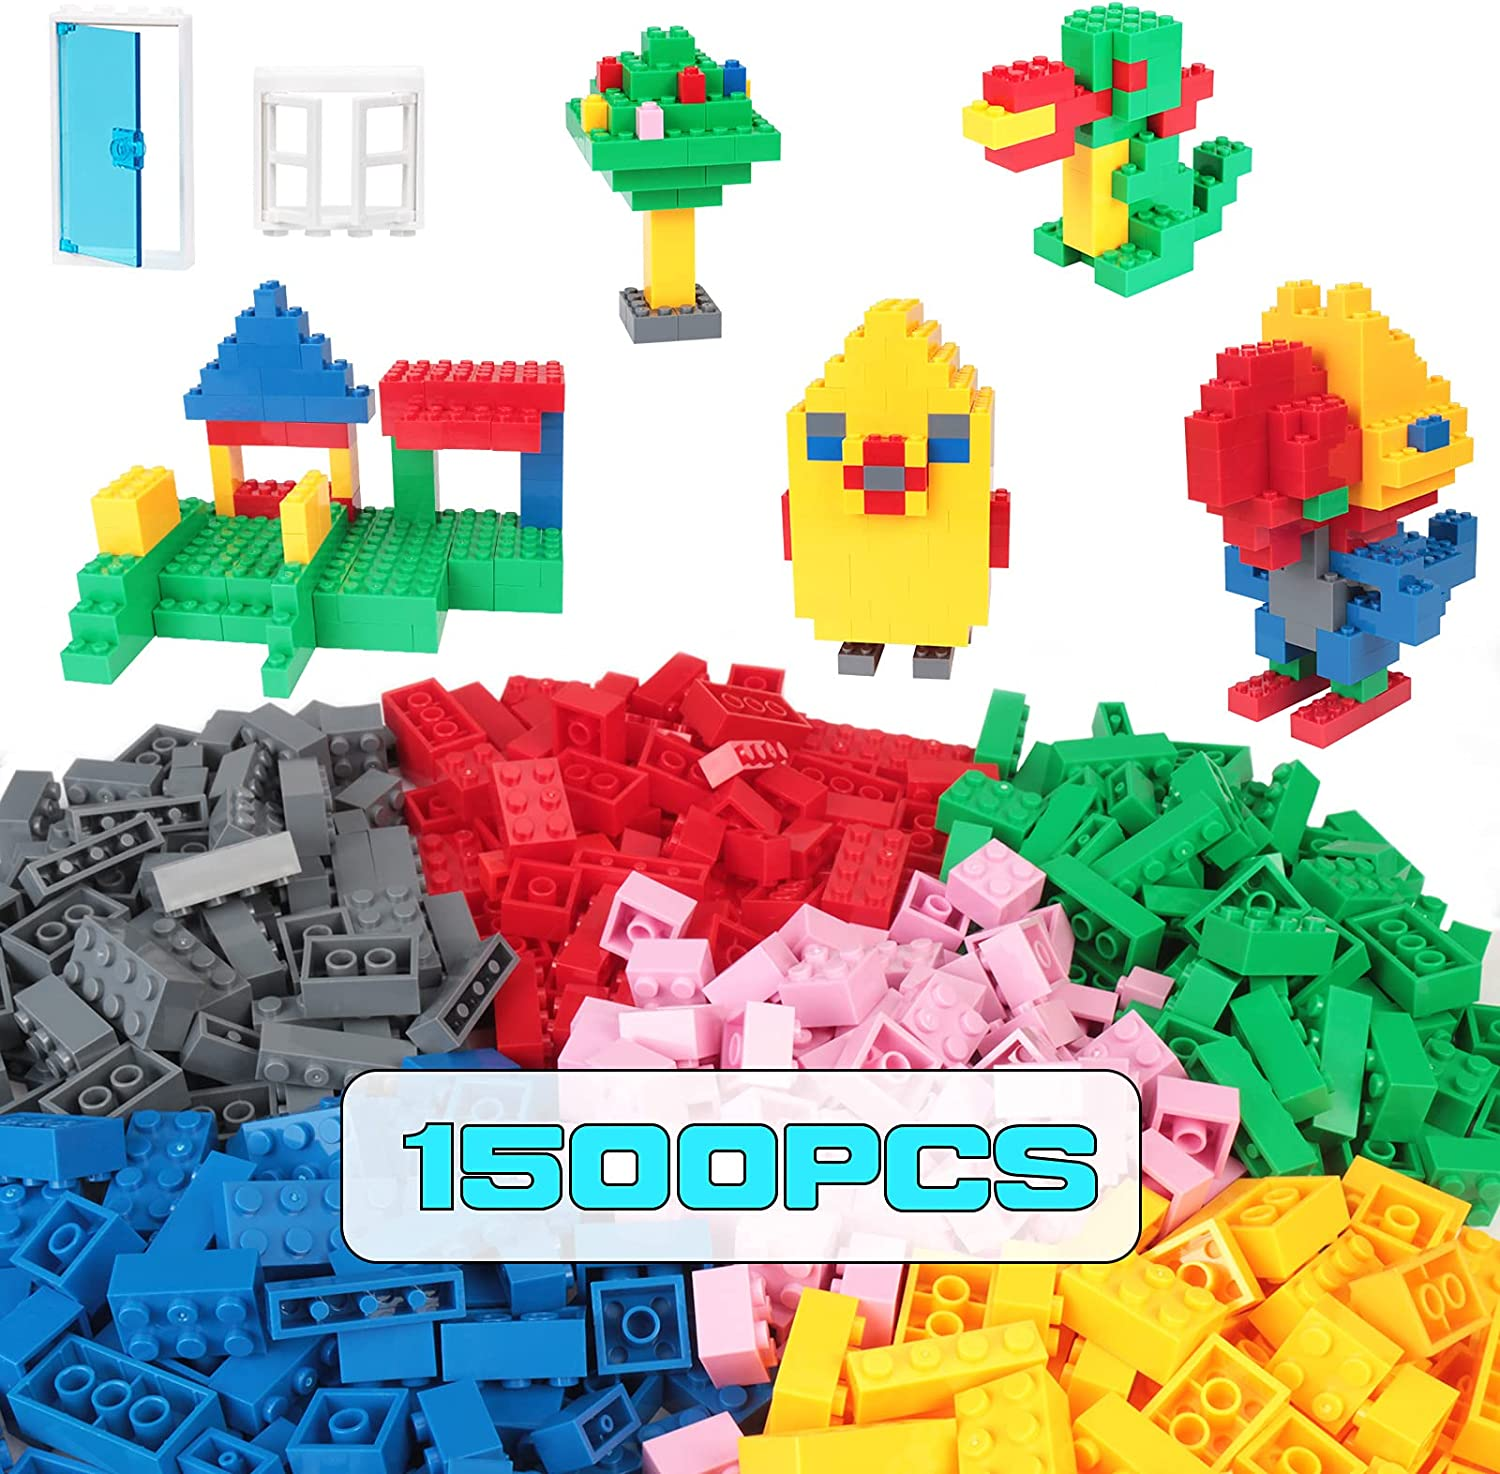 Naivtu 1500 Pcs Building Bricks for Kids, Classic Building Blocks in 11 Colors with 6Pcs Window and Door, Compatible with All Major Brands for Ages 3 4 5 6 7 8 9 10 Year Old Kids